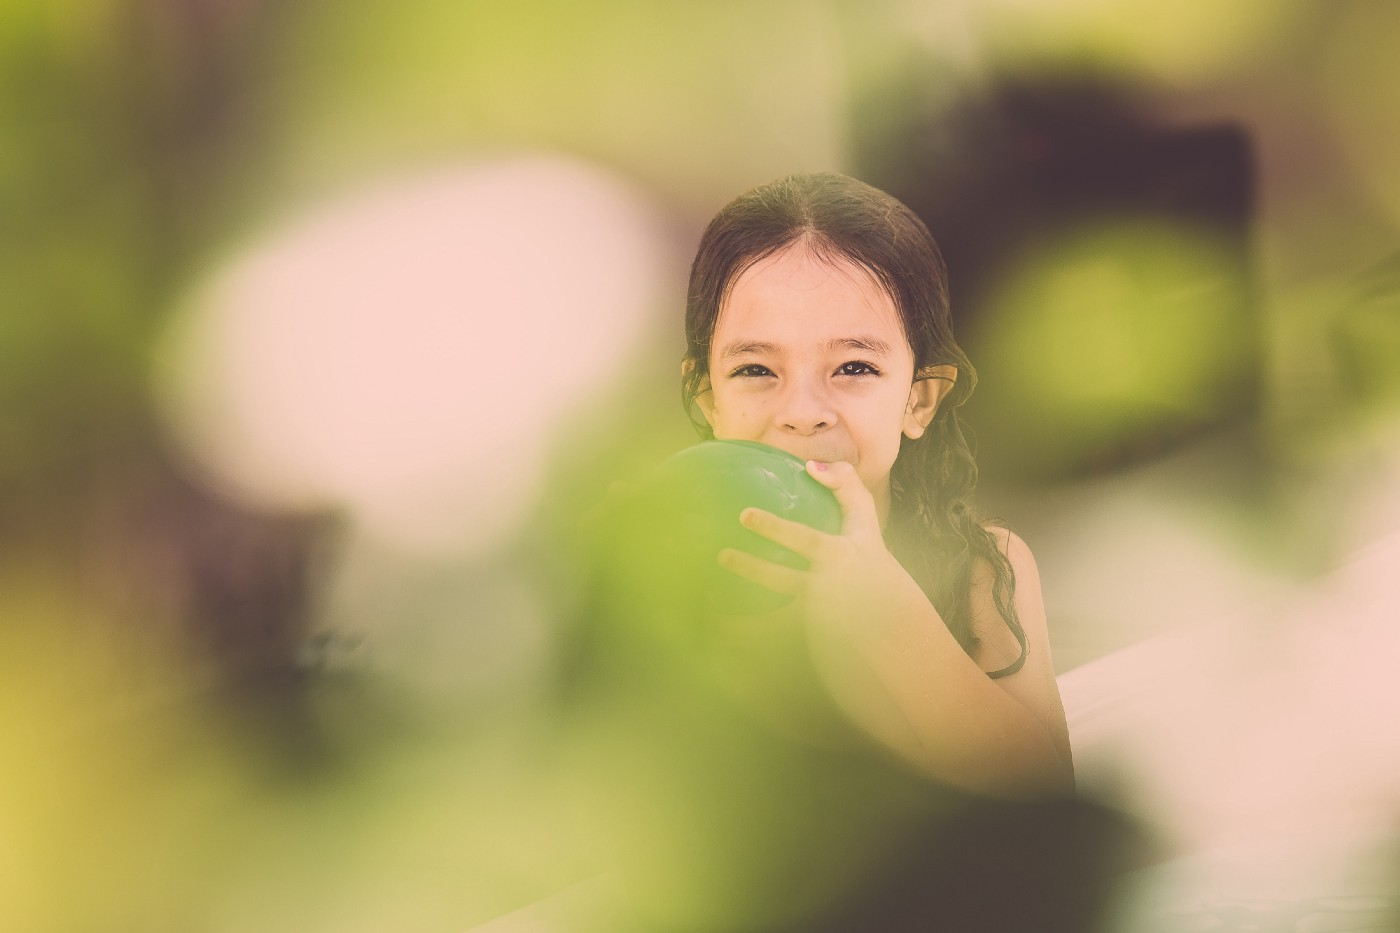 Little girl holding a green balloon with a blurry green background.